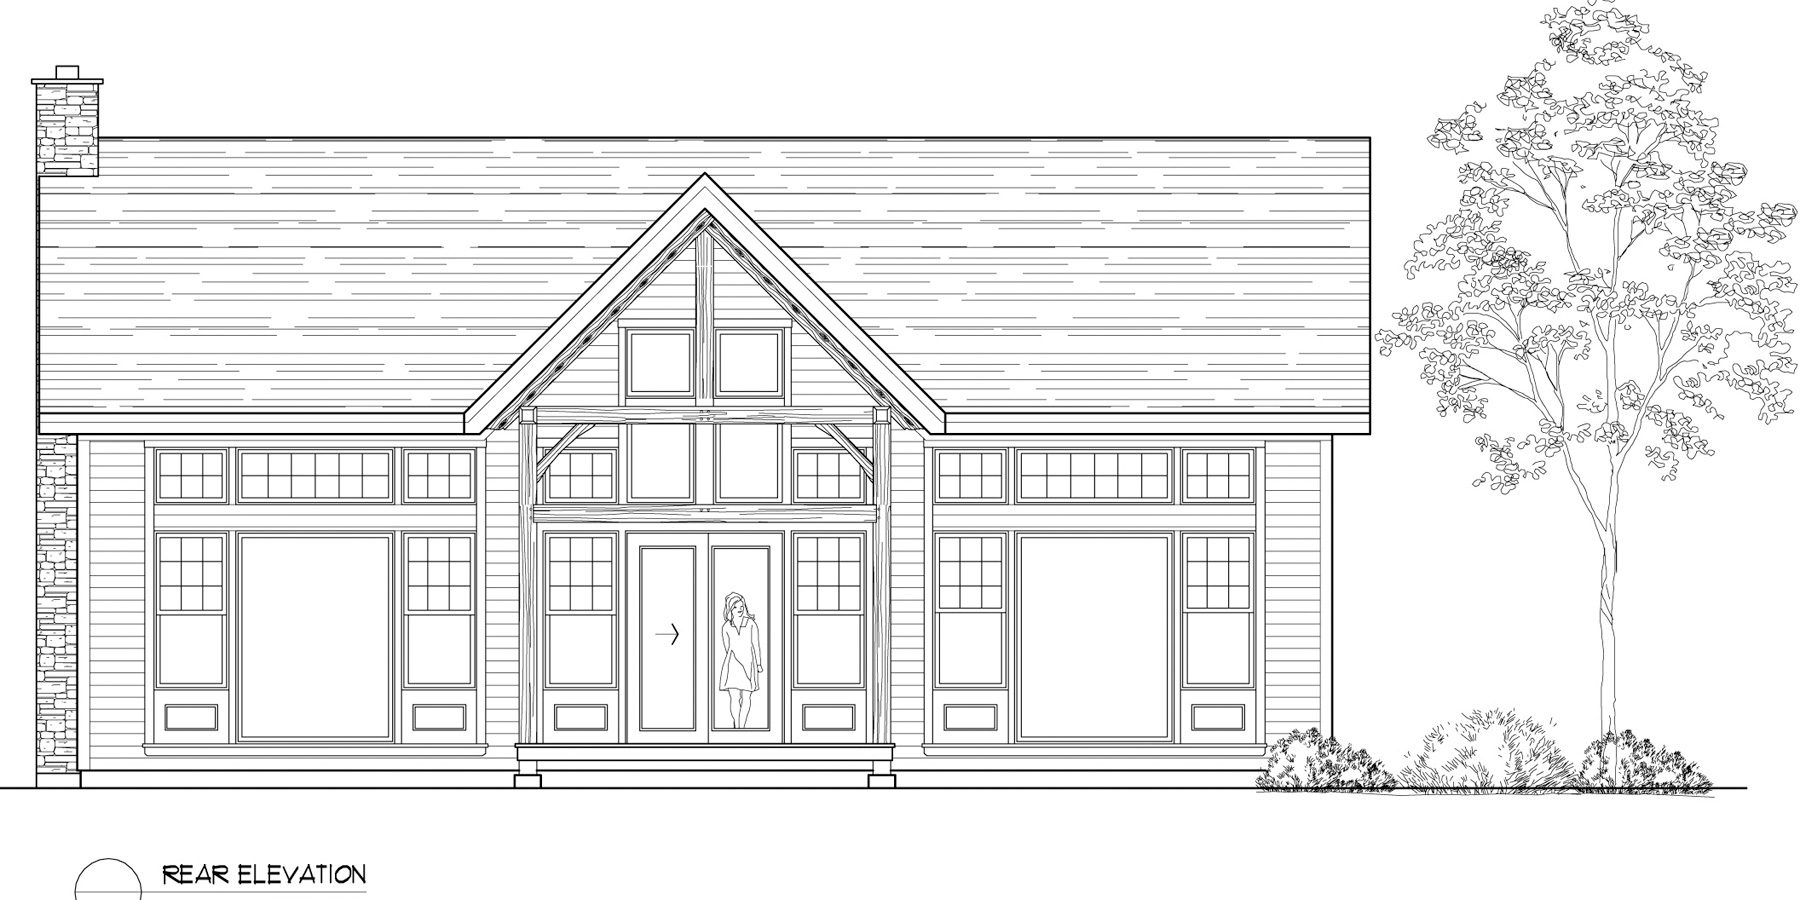 Normerica Timber Frames, House Plan, The Birches 3532, Rear Elevation